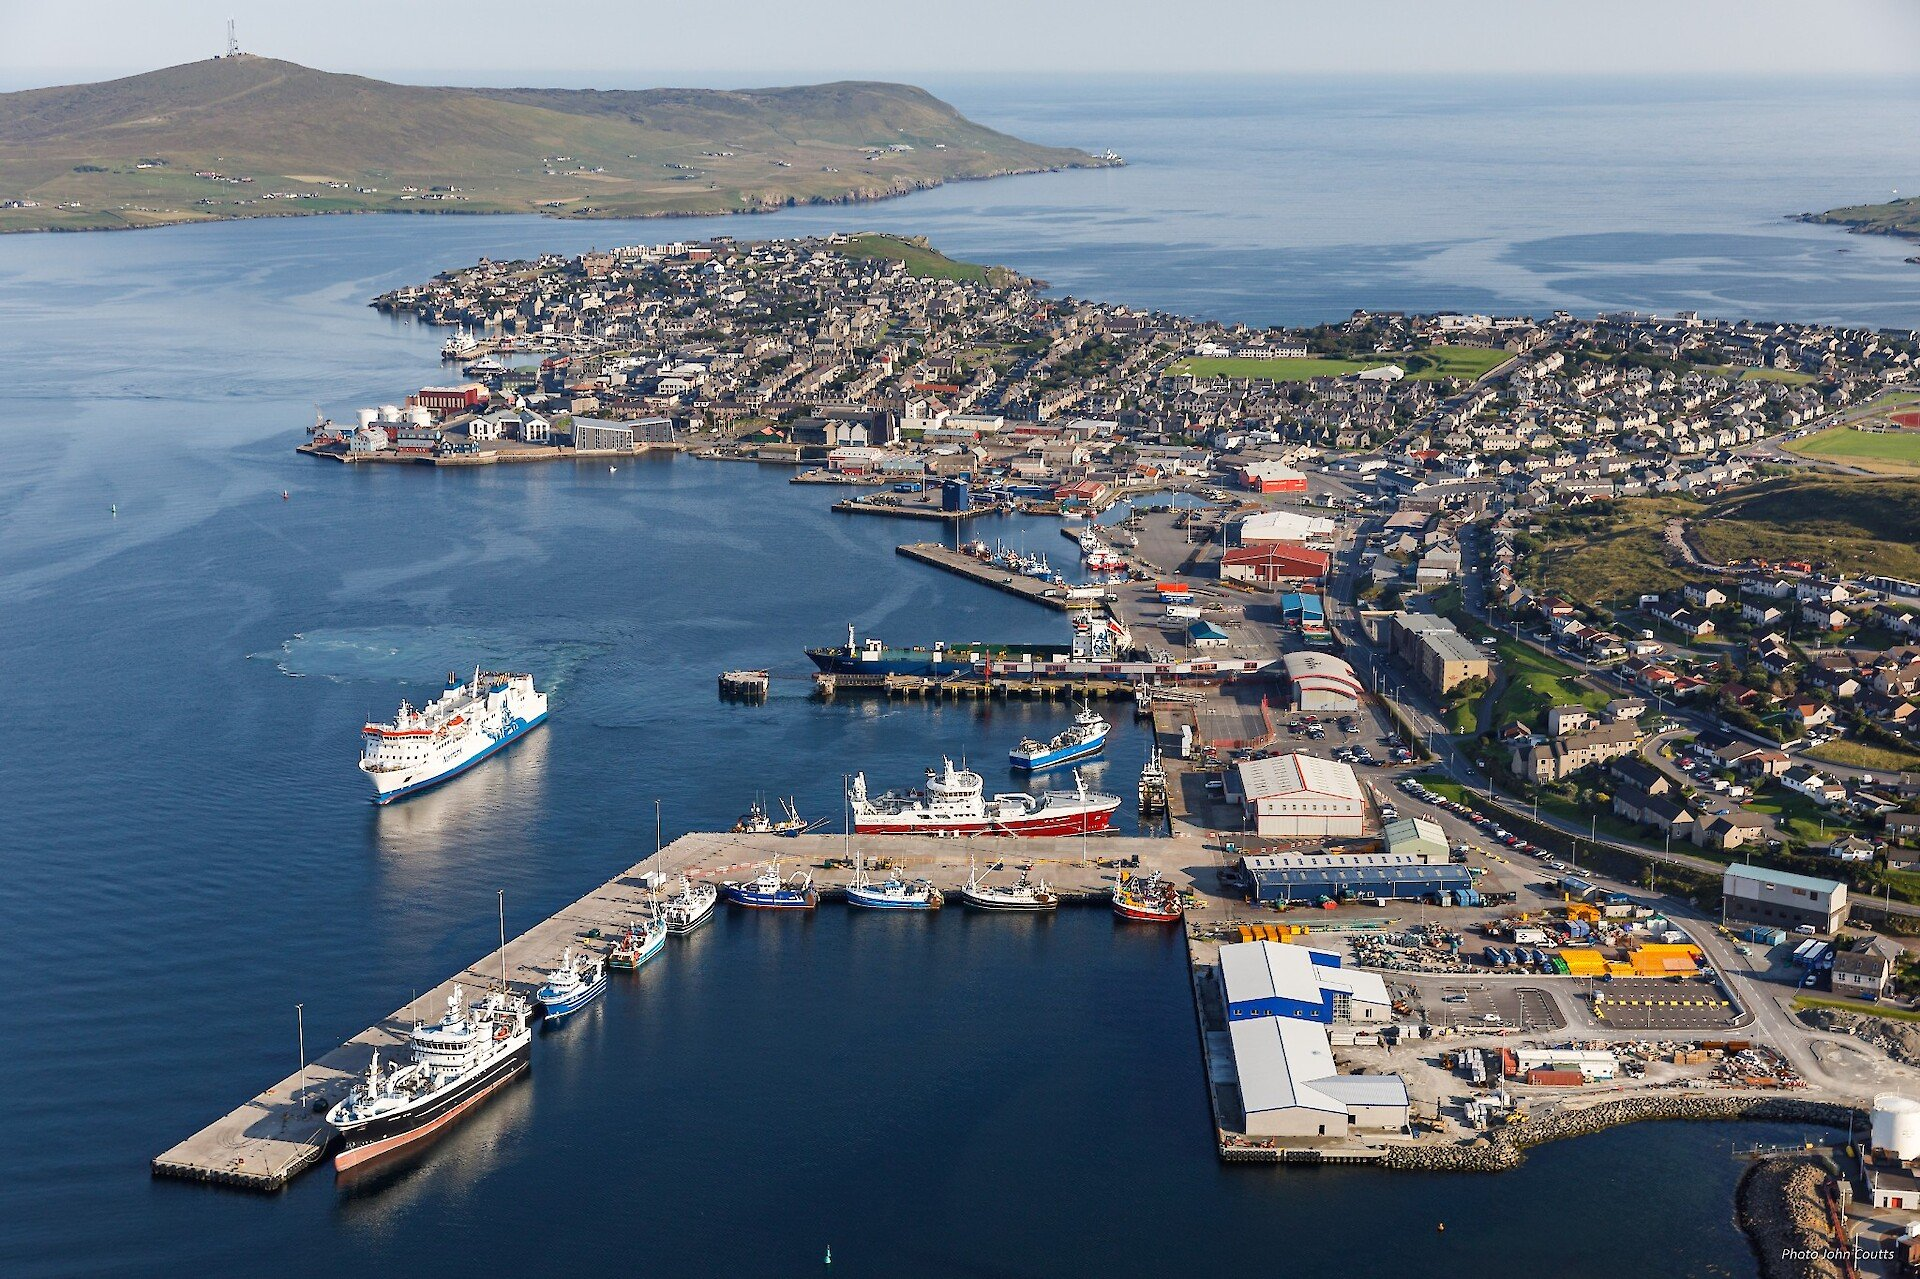 Prince Charles' Royal Visit to the Shetland Islands marked the official opening of the new fish markets at Lerwick and Scalloway harbours